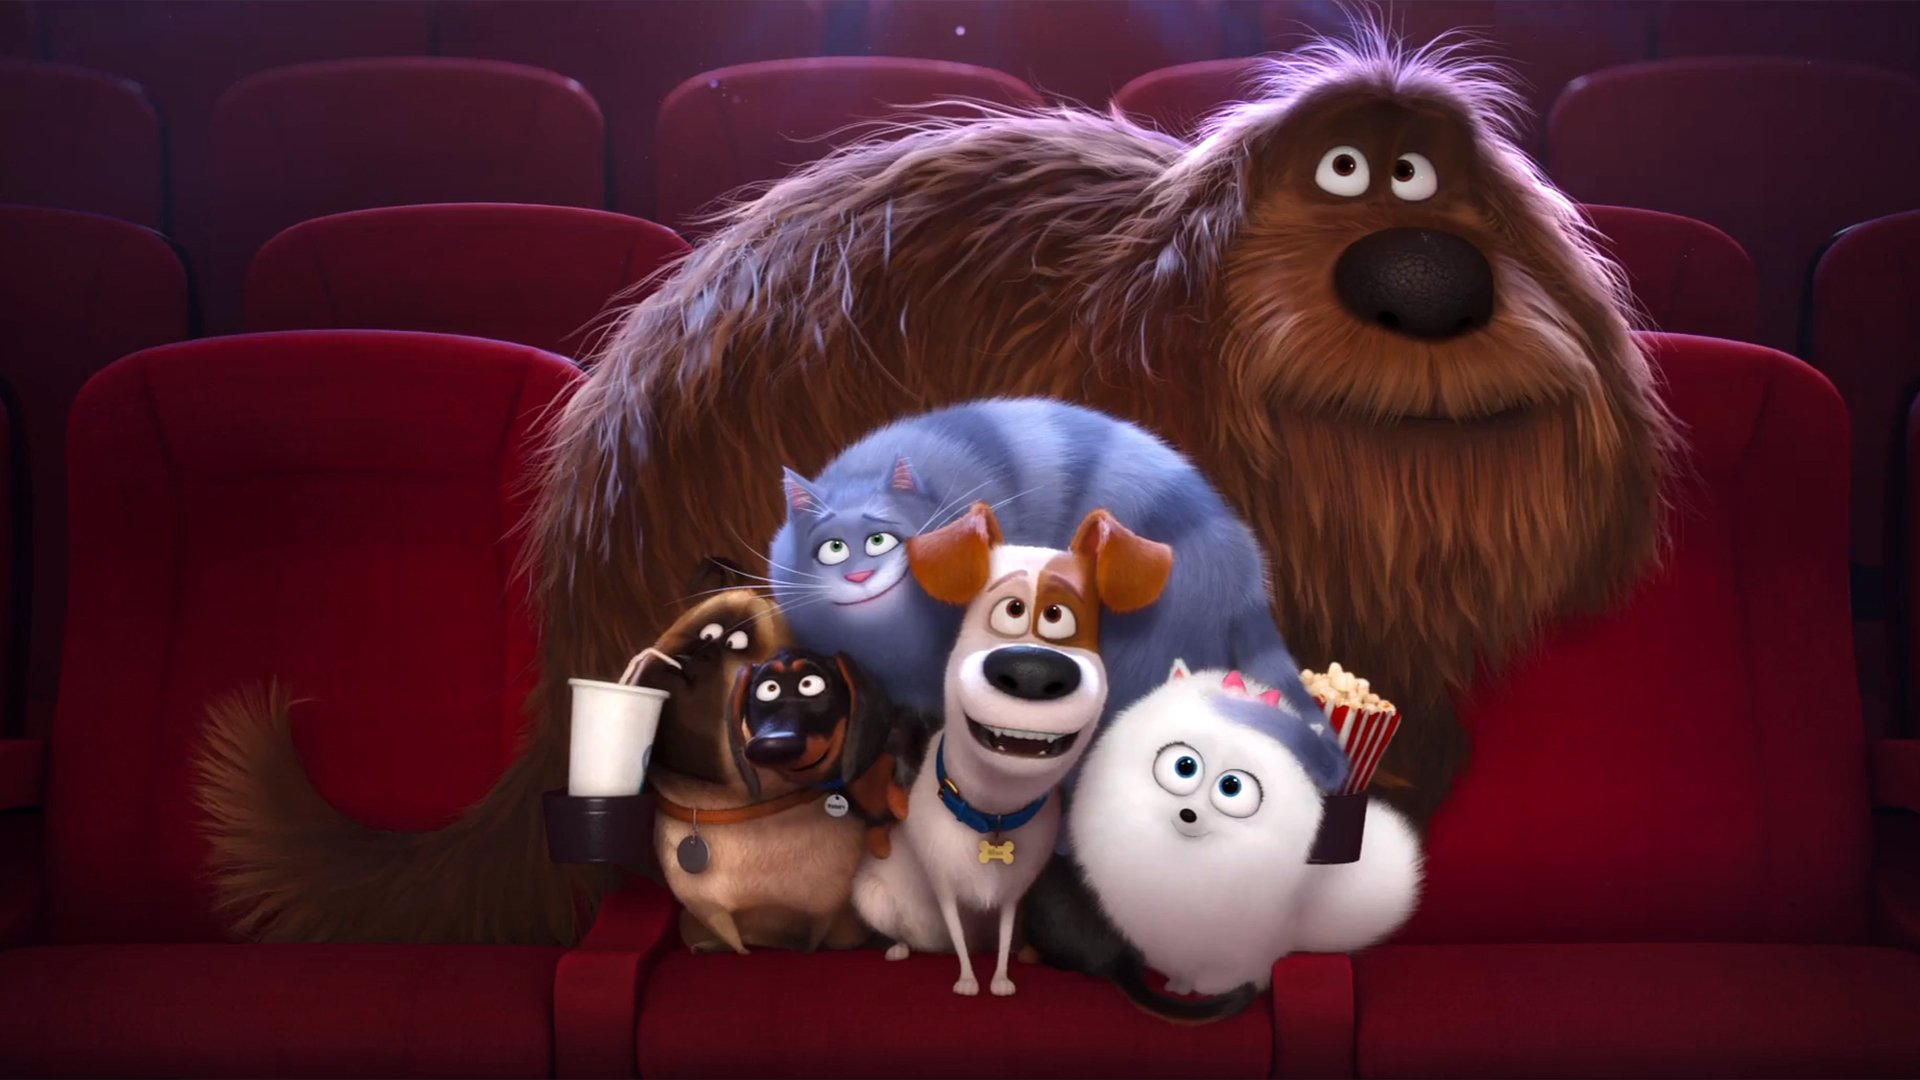 20 The Secret Life Of Pets Hd Wallpapers Background Images